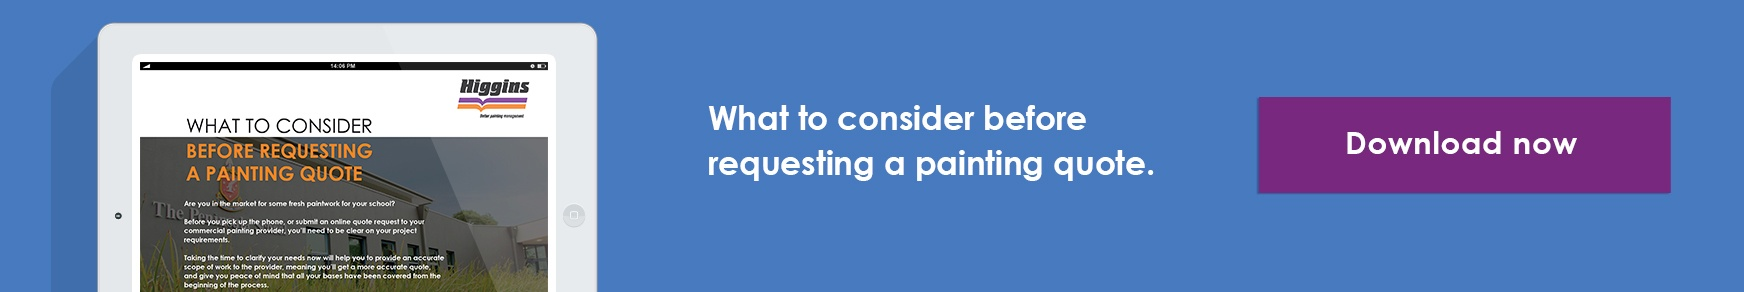 What To Consider Before Requesting A Painting Quote